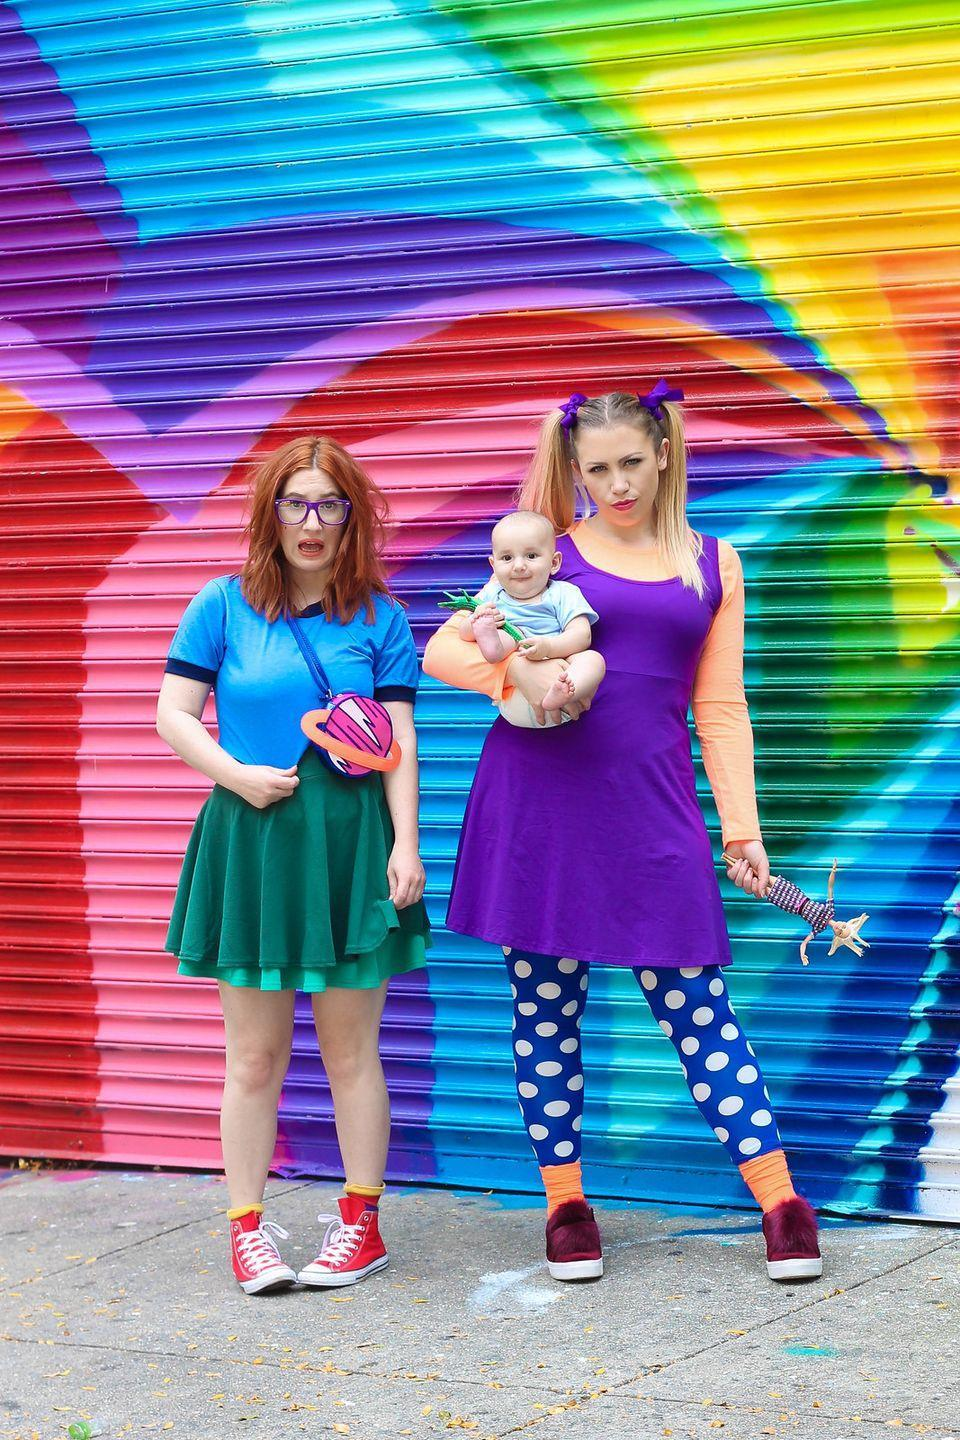 """<p>Halloween's the perfect excuse to act like a kid, so why not dress like one, too? Chucky and Angelica are two of TV's most beloved cartoon troublemakers, and their colorful costumes are surprisingly easy to DIY. </p><p><a class=""""link rapid-noclick-resp"""" href=""""https://www.amazon.com/dp/B07CPQC2YX?tag=syn-yahoo-20&ascsubtag=%5Bartid%7C10055.g.29516206%5Bsrc%7Cyahoo-us"""" rel=""""nofollow noopener"""" target=""""_blank"""" data-ylk=""""slk:SHOP PURPLE DRESSES"""">SHOP PURPLE DRESSES</a></p><p><a class=""""link rapid-noclick-resp"""" href=""""https://www.amazon.com/Urban-CoCo-Versatile-Stretchy-X-Large/dp/B017781YNE/?tag=syn-yahoo-20&ascsubtag=%5Bartid%7C10055.g.29516206%5Bsrc%7Cyahoo-us"""" rel=""""nofollow noopener"""" target=""""_blank"""" data-ylk=""""slk:SHOP GREEN SKIRTS"""">SHOP GREEN SKIRTS</a></p><p><em><a href=""""http://livingaftermidnite.com/2019/10/costumes-you-can-diy-with-an-amazon-dress.html"""" rel=""""nofollow noopener"""" target=""""_blank"""" data-ylk=""""slk:Get the tutorial at Living After Midnite »"""" class=""""link rapid-noclick-resp"""">Get the tutorial at Living After Midnite »</a></em></p>"""